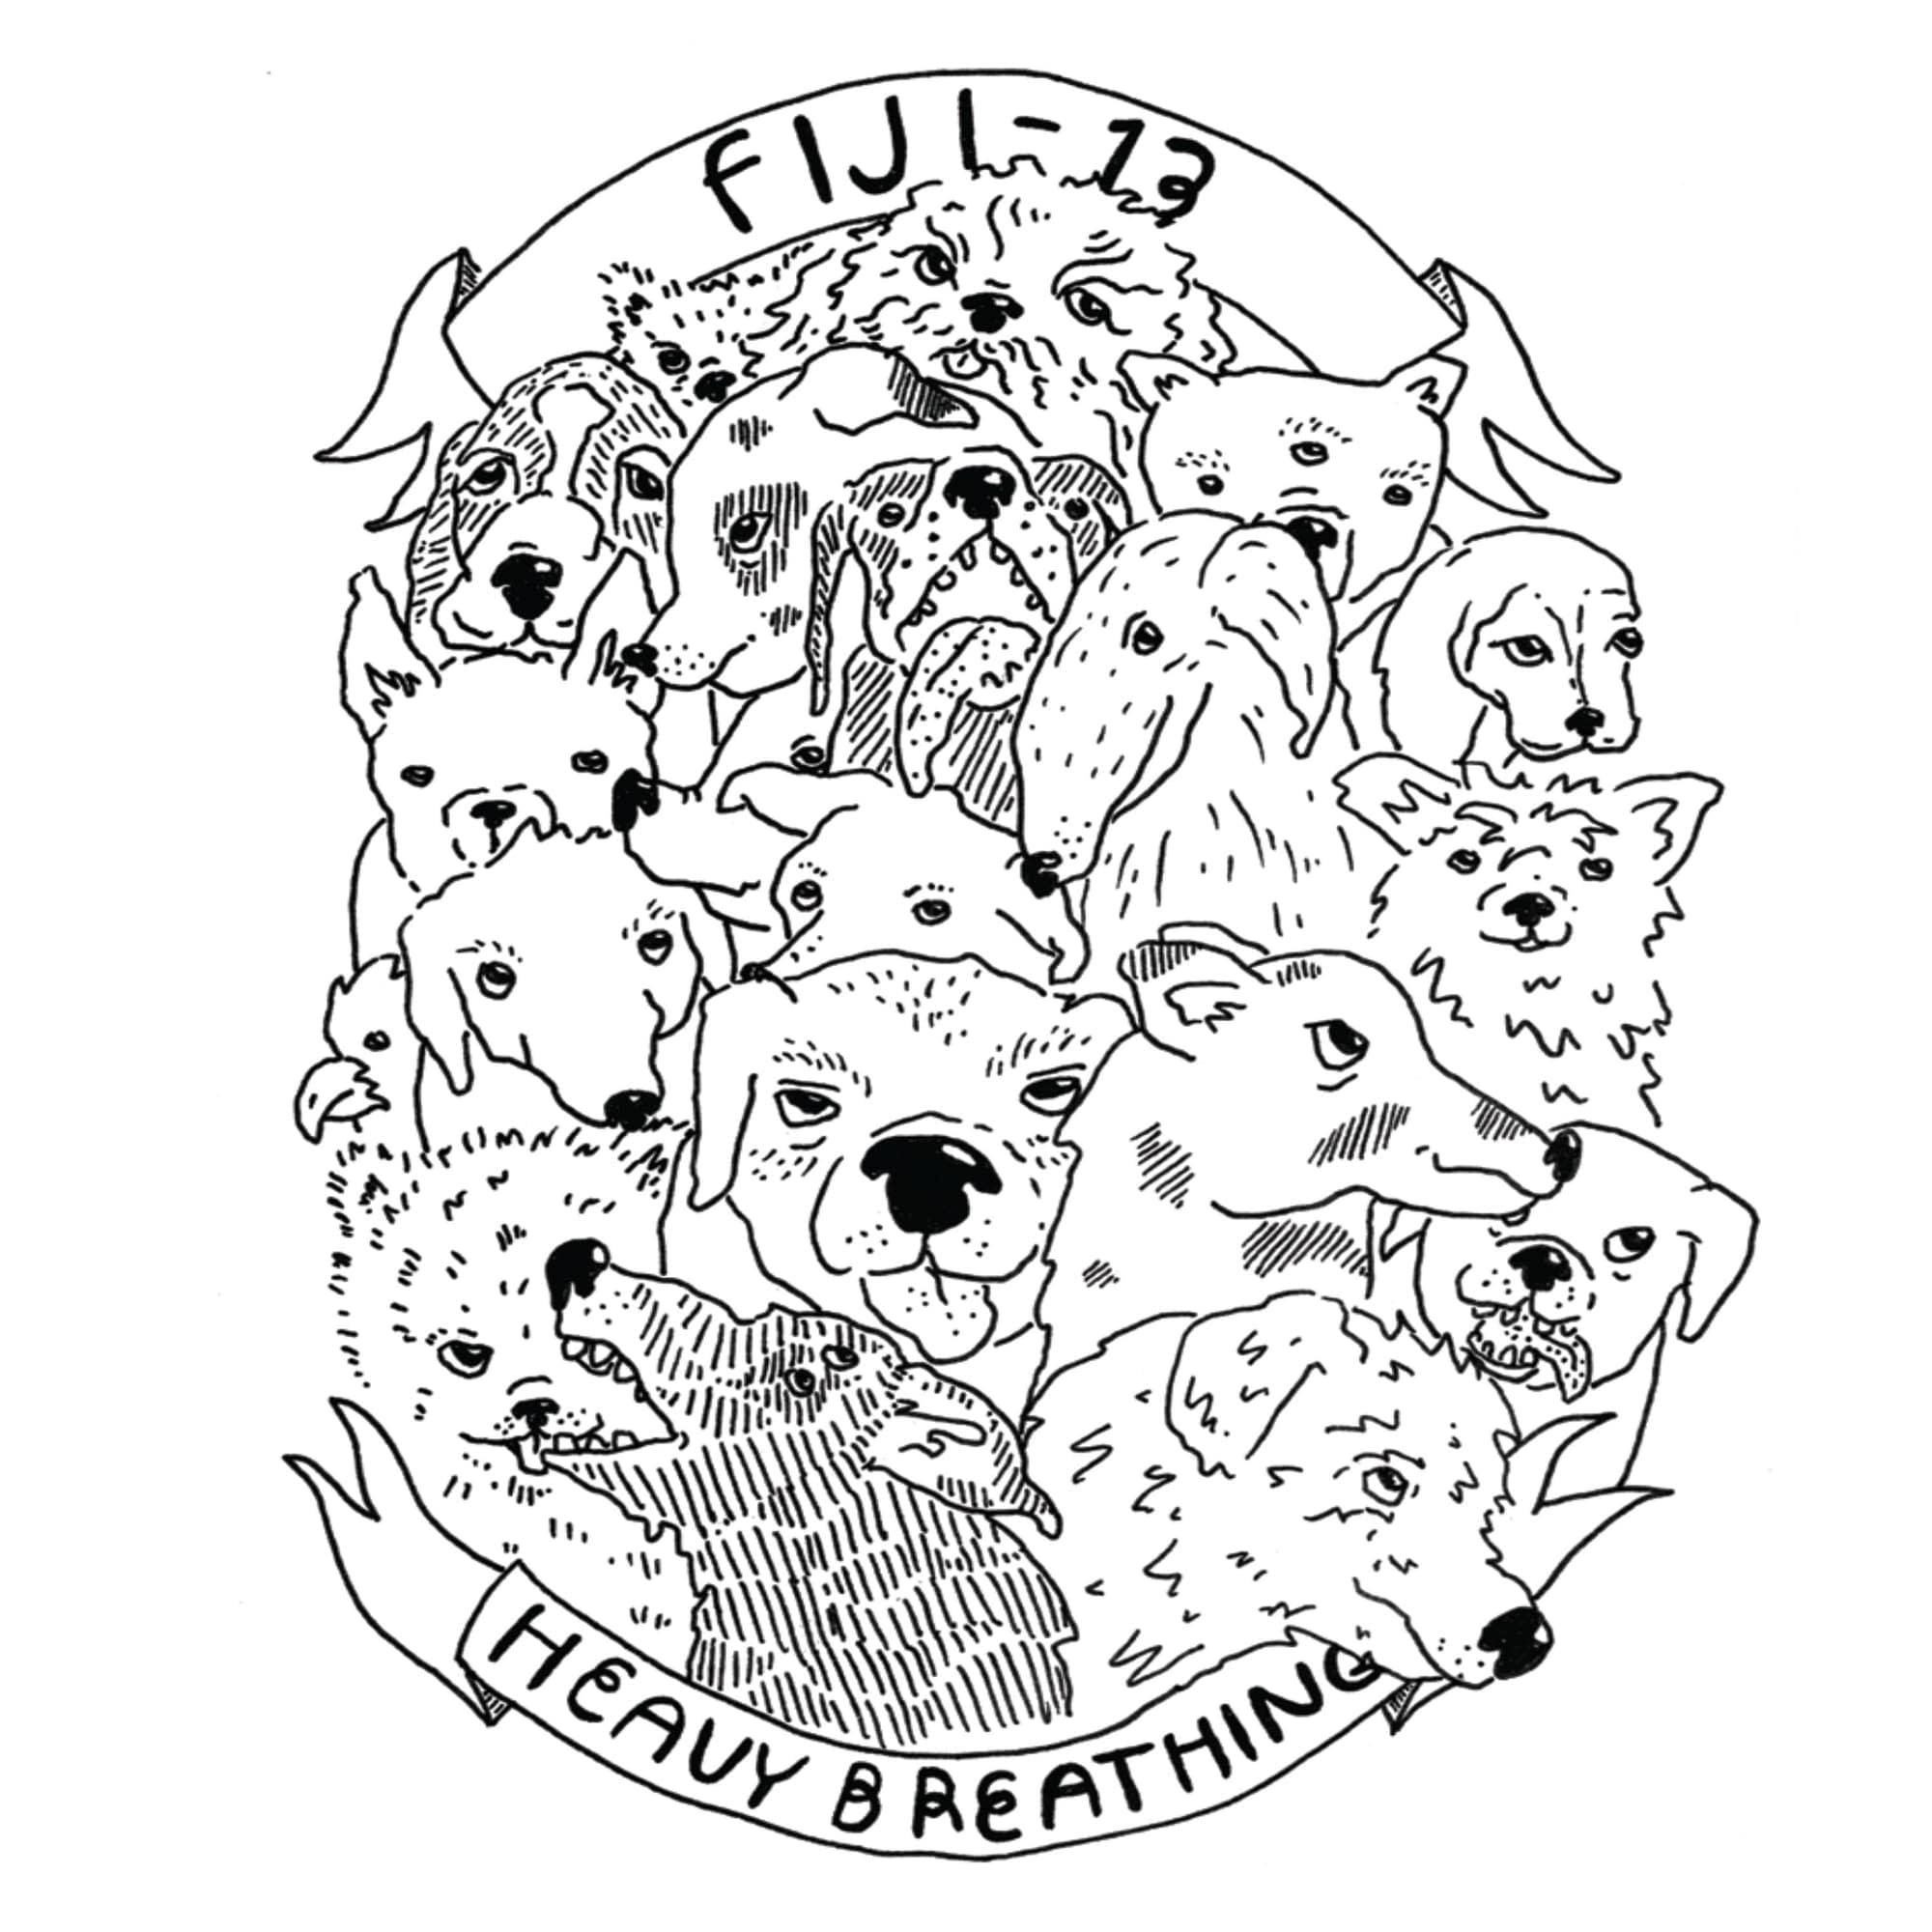 FIJI-13 'Heavy Breathing' cover art